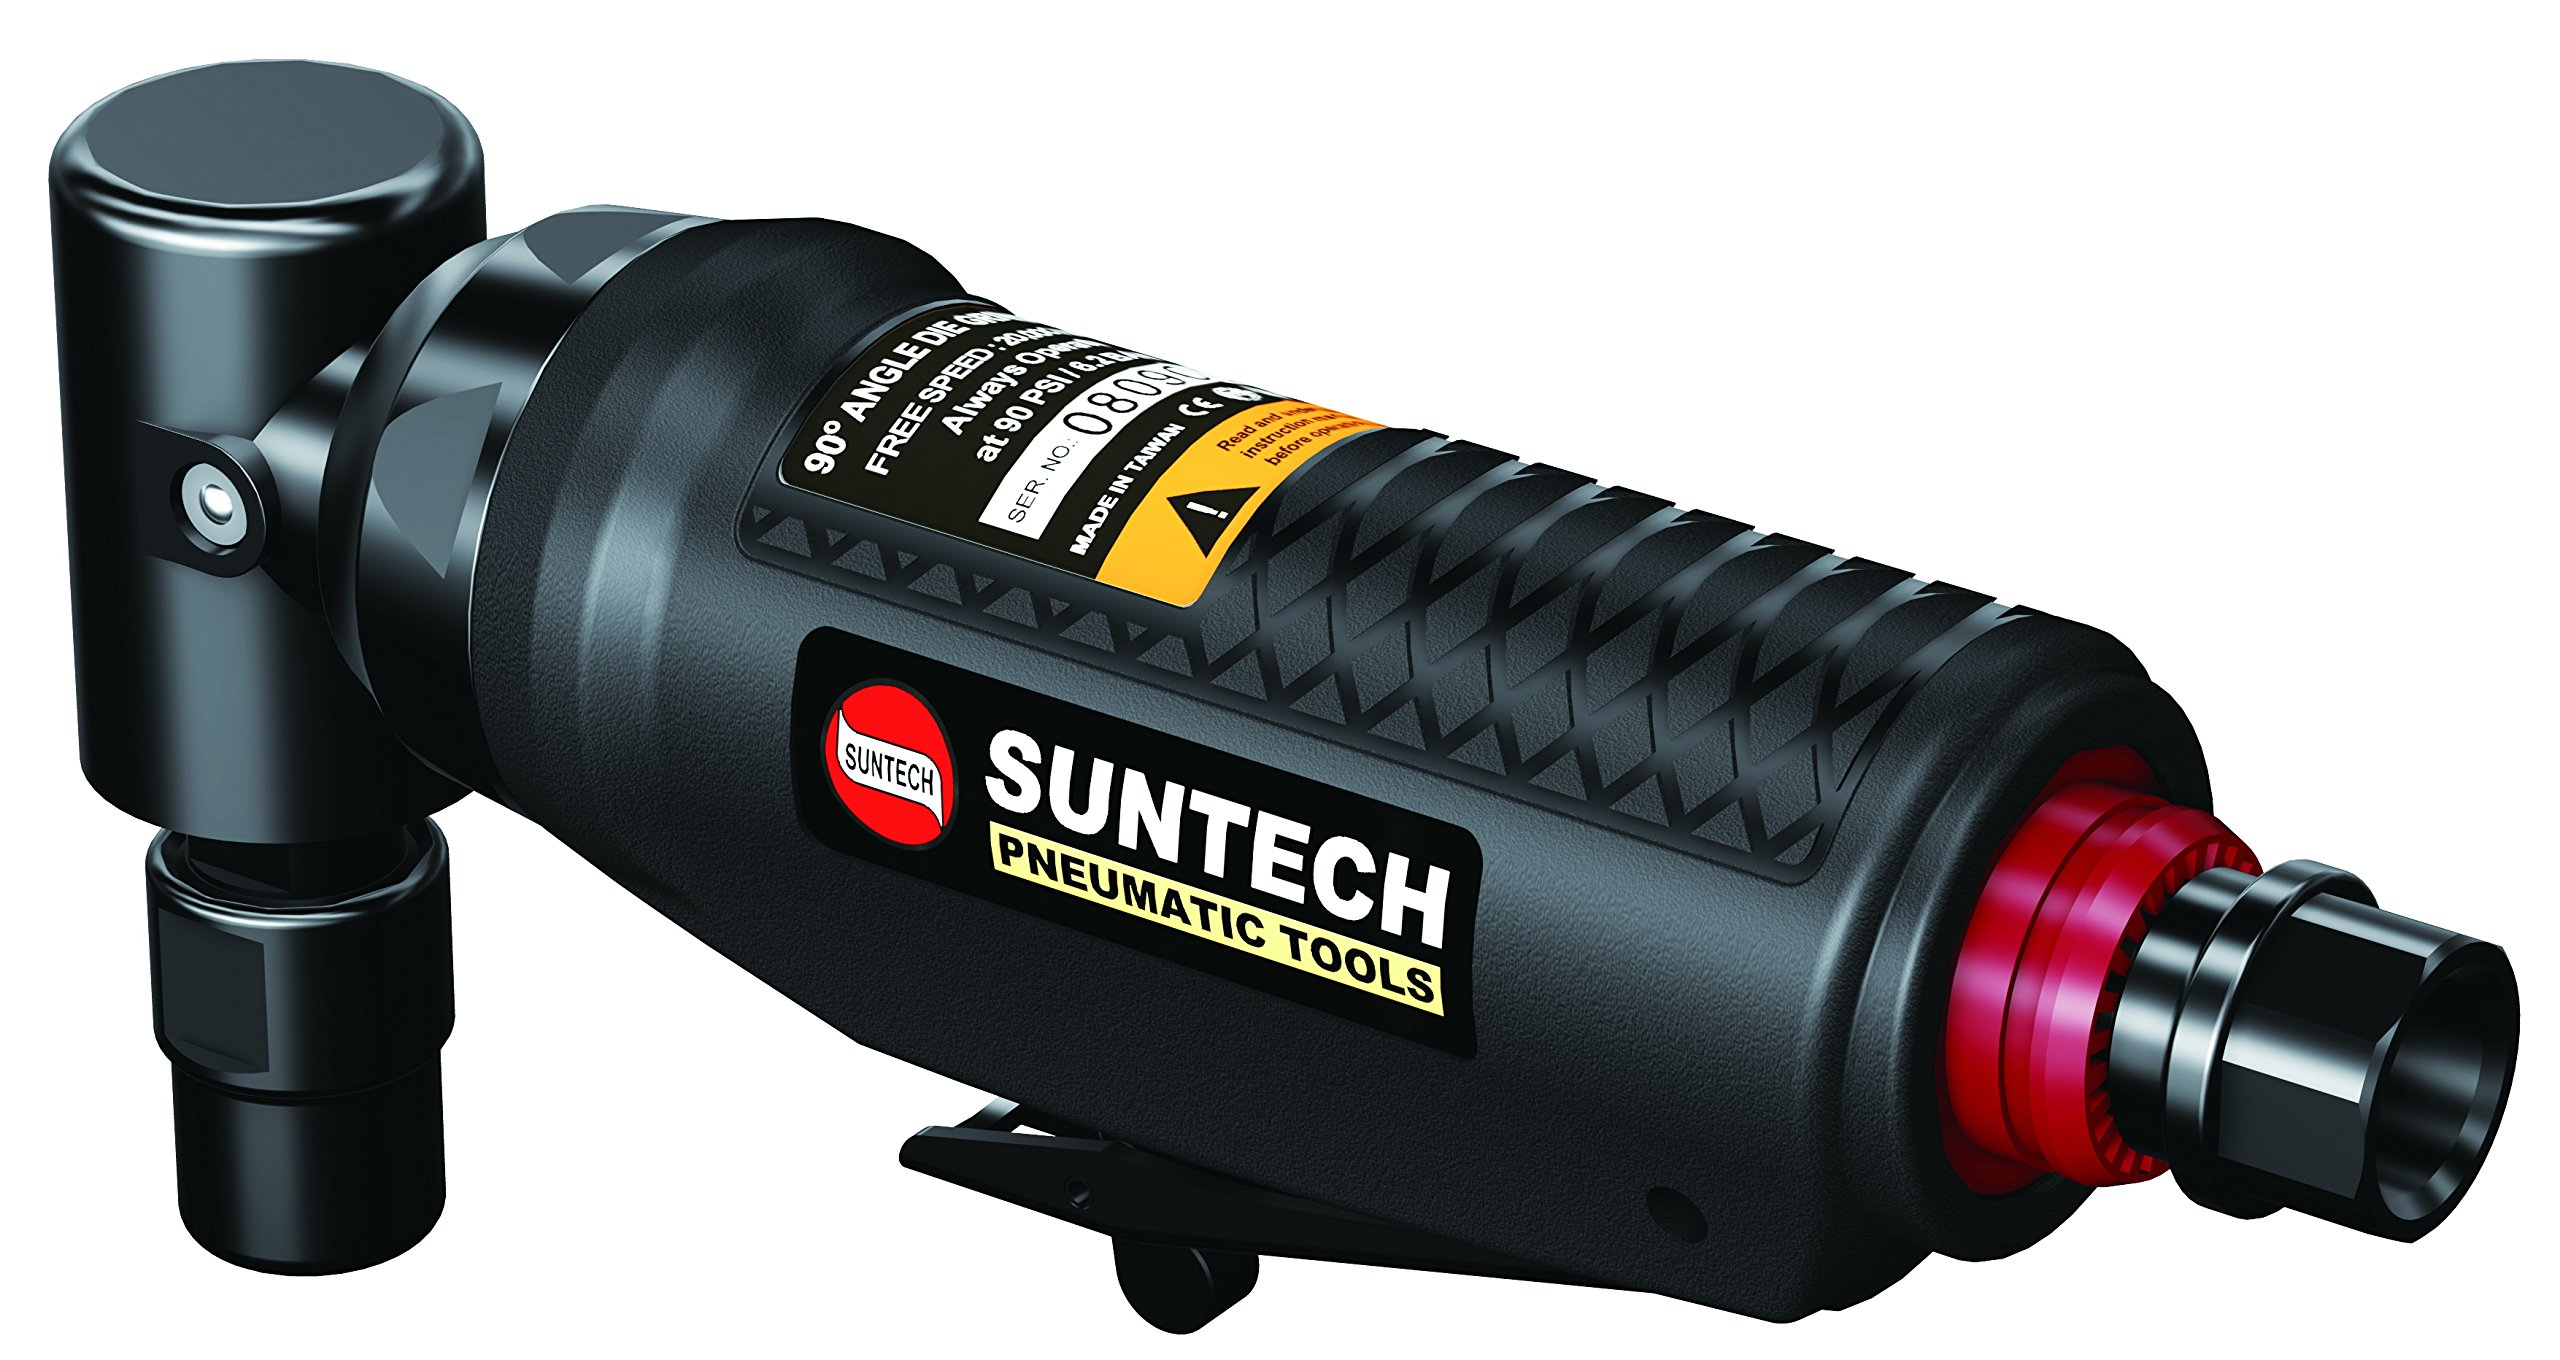 SUNTECH SM-52-5300 Sunmatch Power Die Grinders, Black